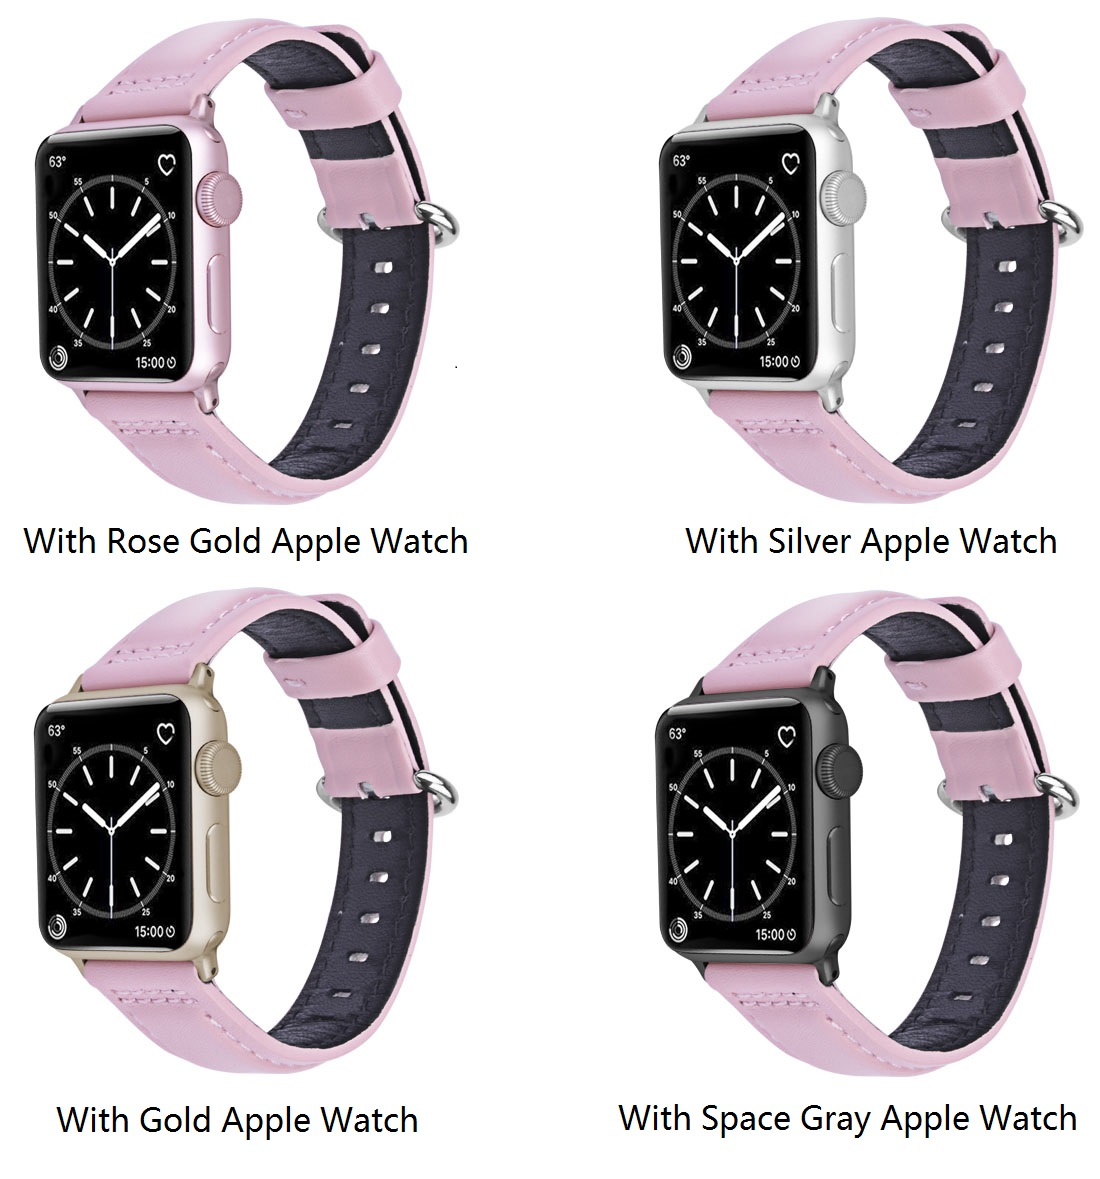 Apple Watch Band Wolait Soft Genuine Sheep Leather Bands Strap For Apple Watch Series 3 Series 2 Series 1 Rose Gold 38mm Wolait